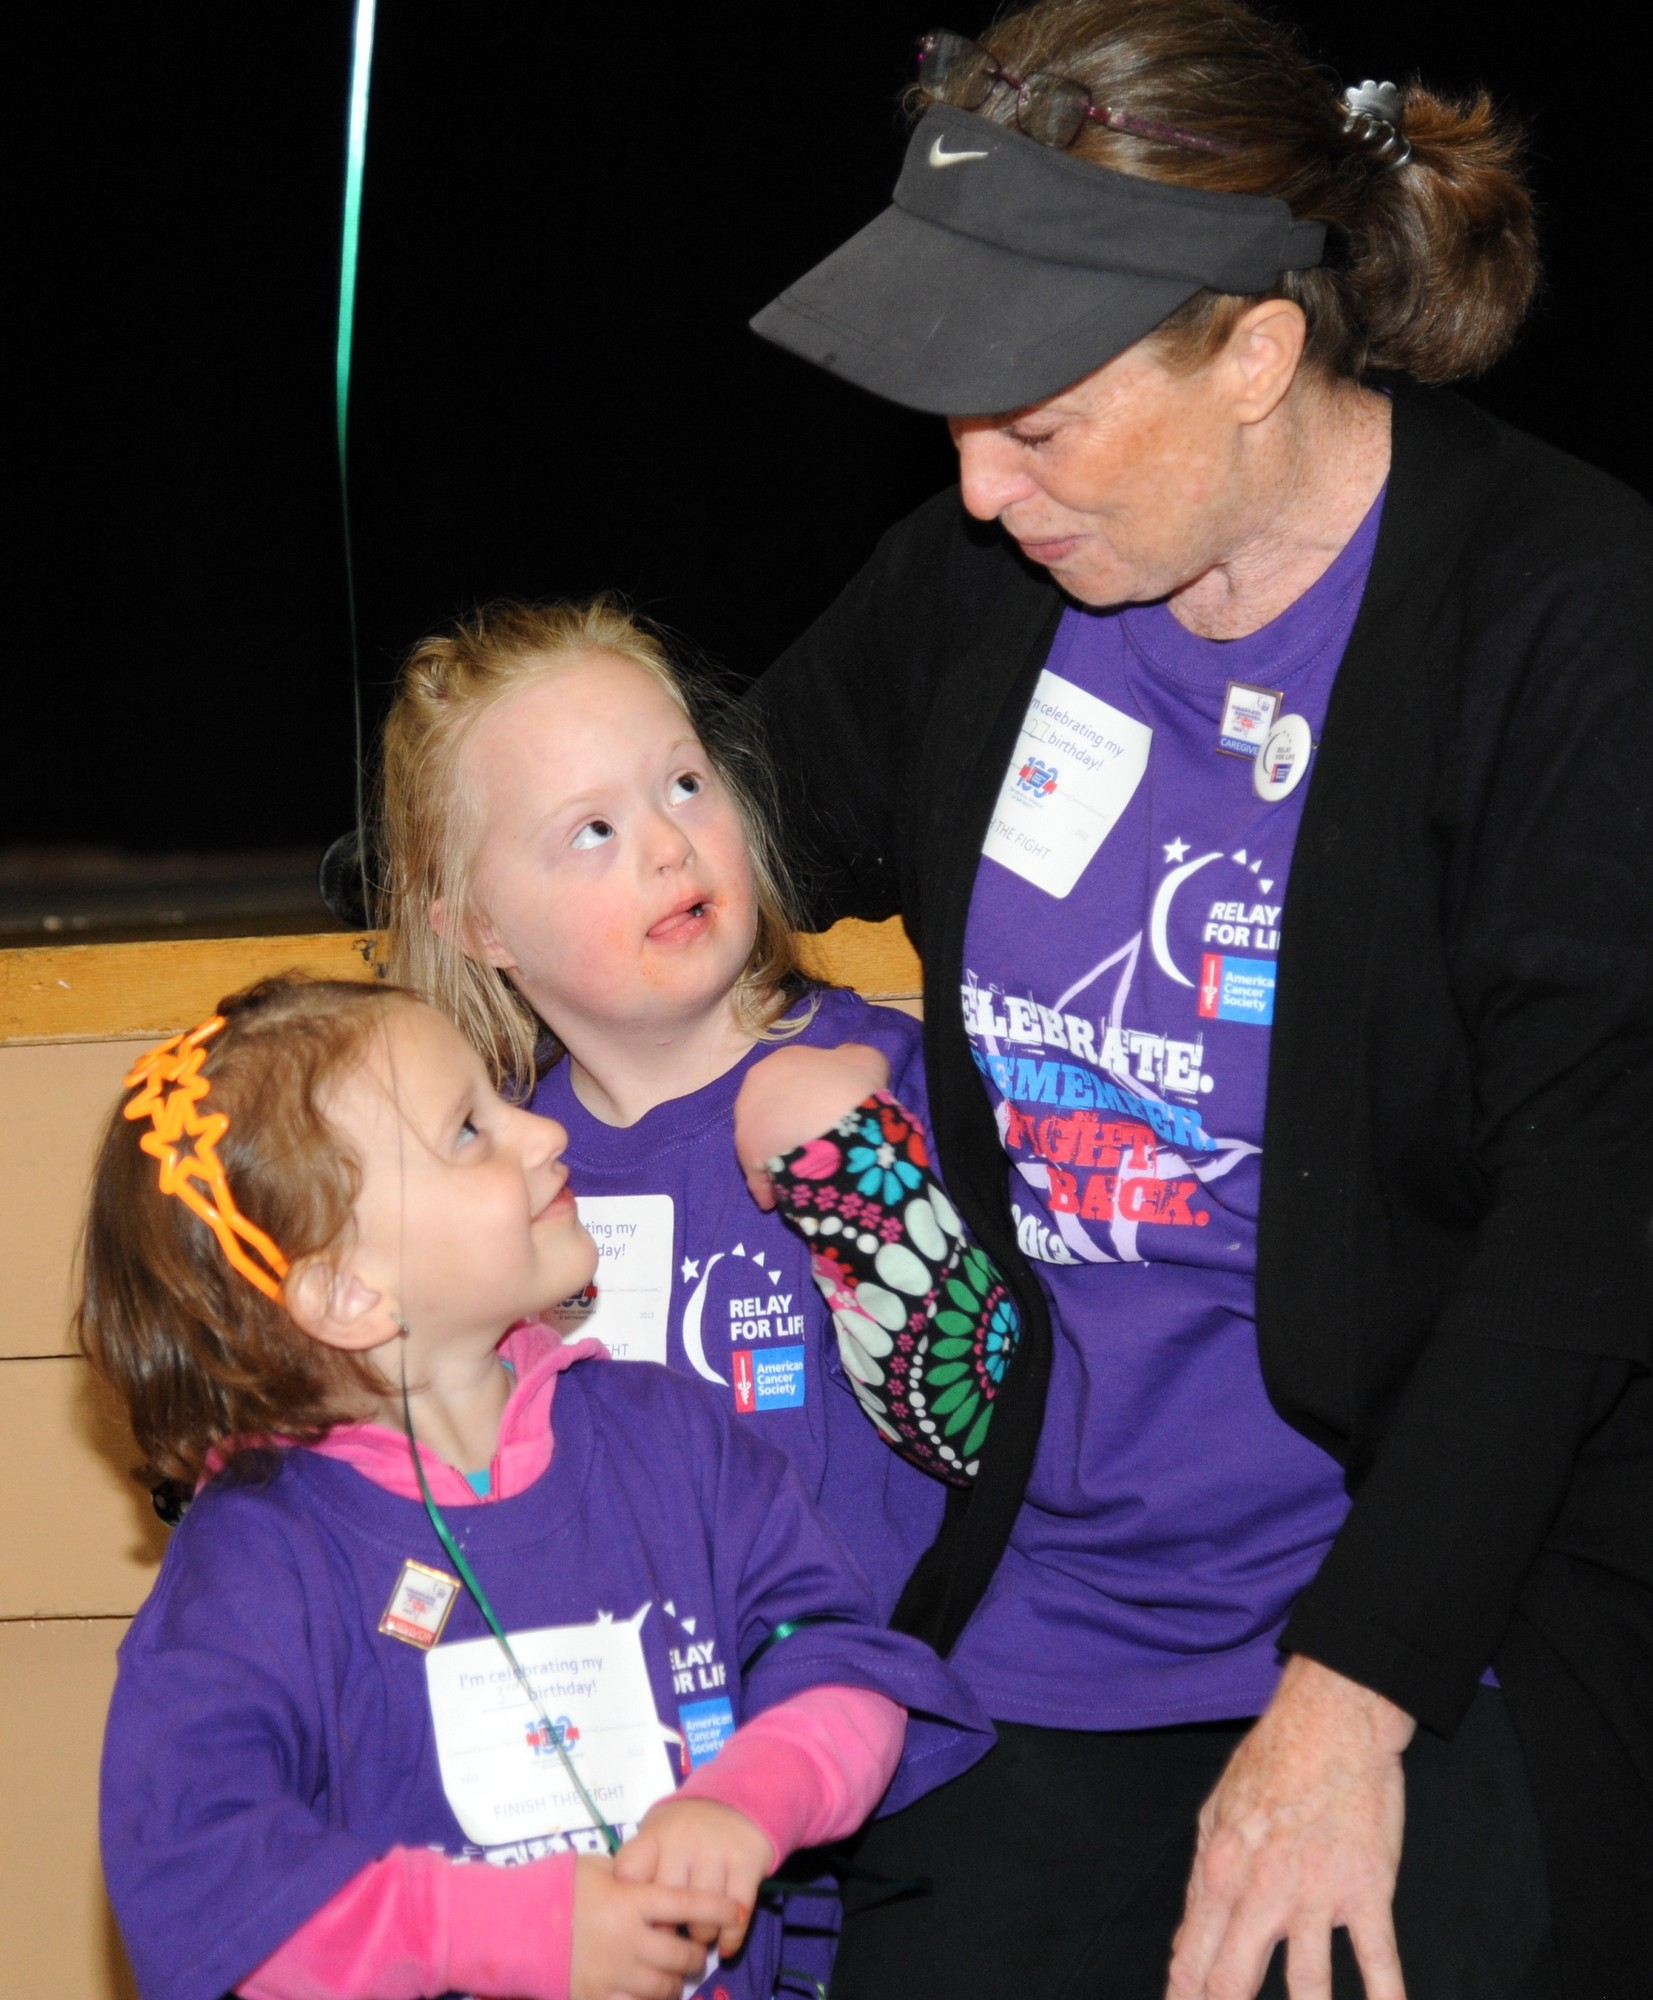 Nathlie cicero, 3, Laura Cervas, 7, and  Pat Alonge joined in the survivor�s walk.